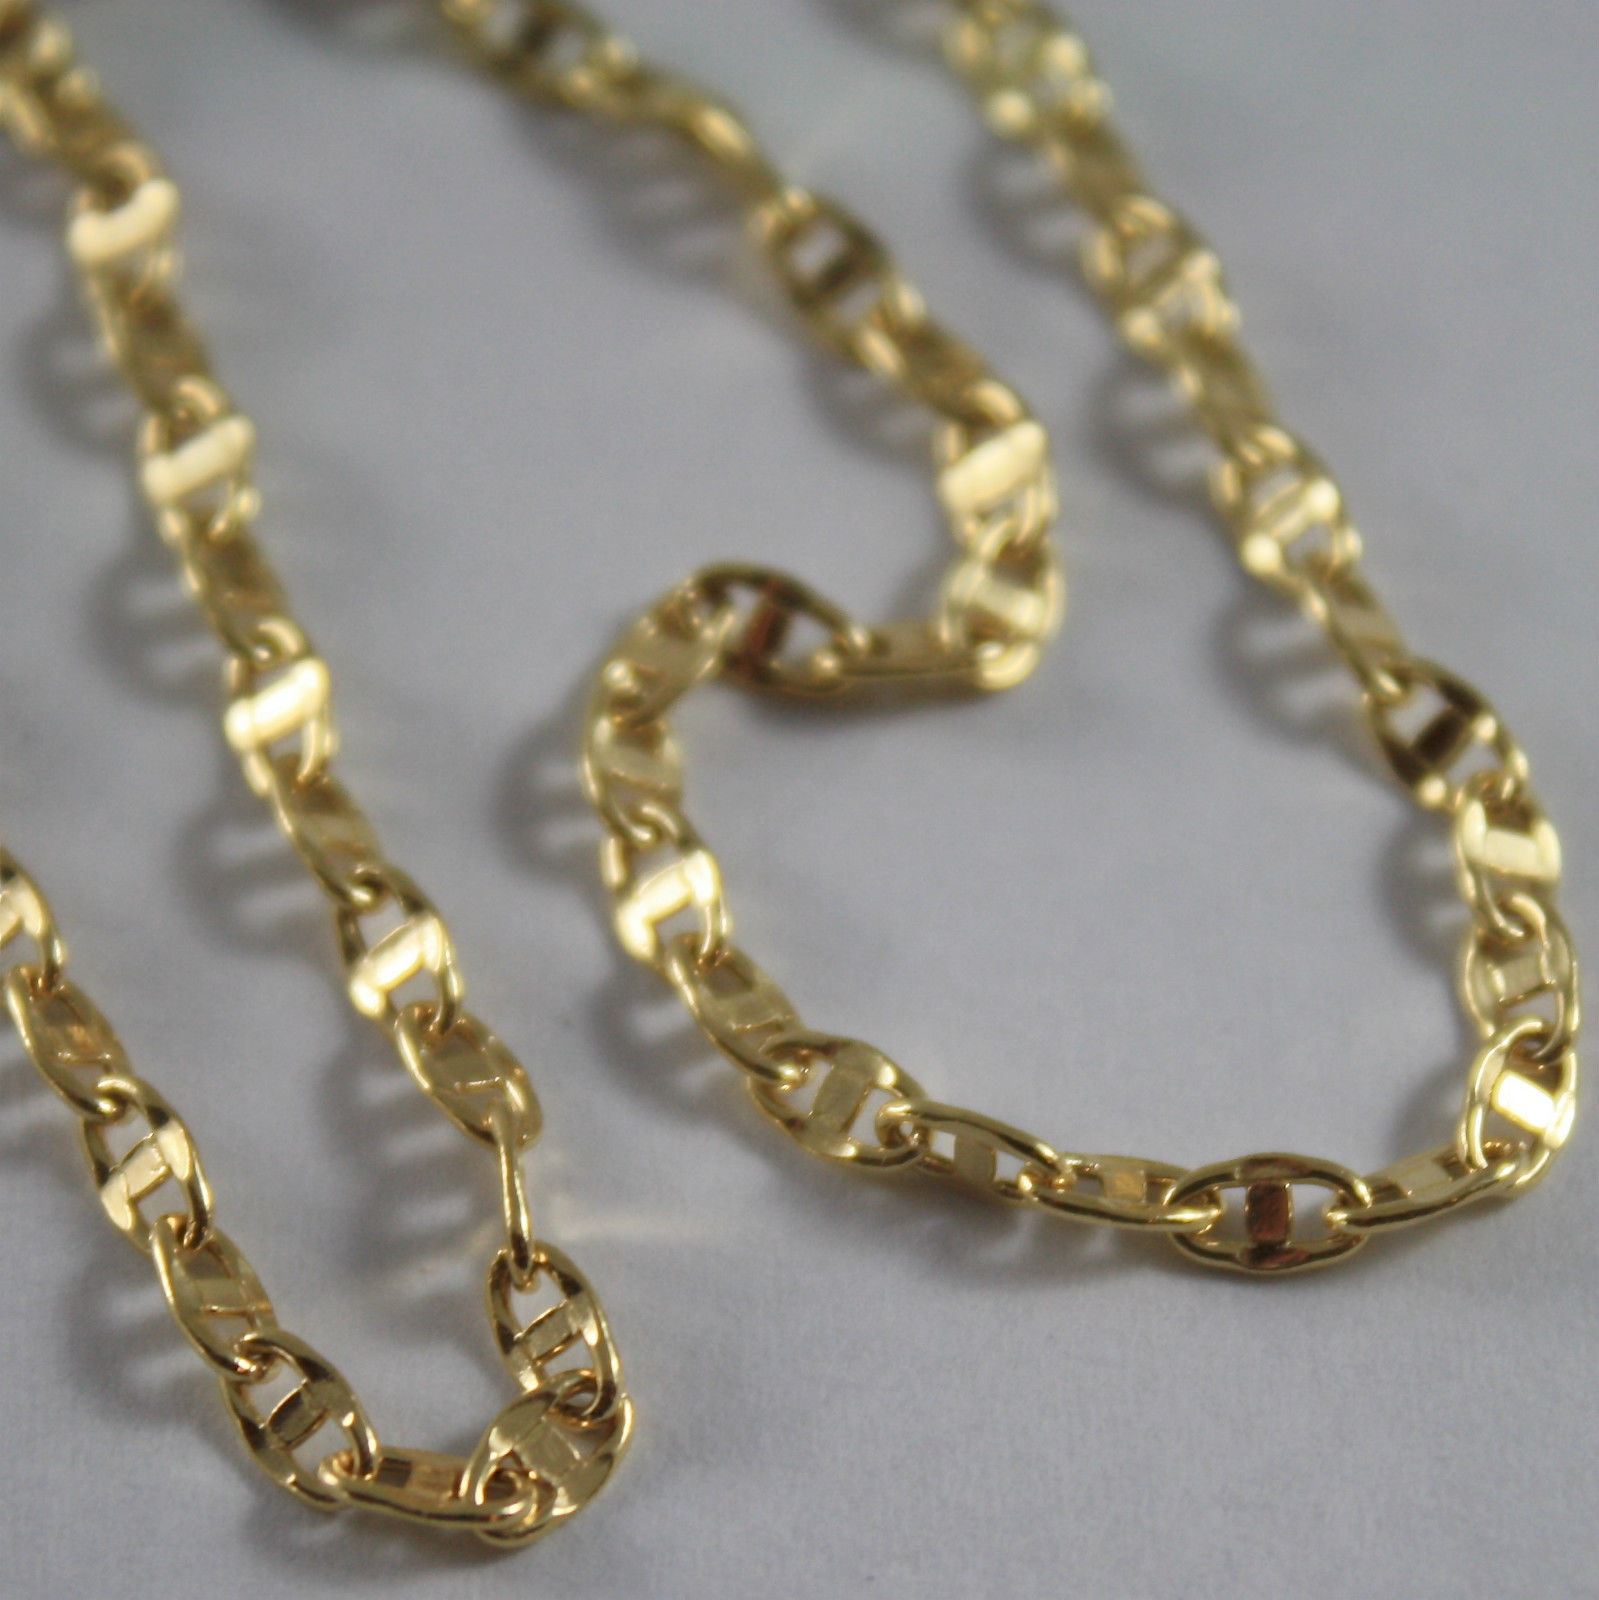 SOLID 18K YELLOW GOLD CHAIN NECKLACE HAMMERED NAVY MESH 19.68 IN. MADE IN ITALY